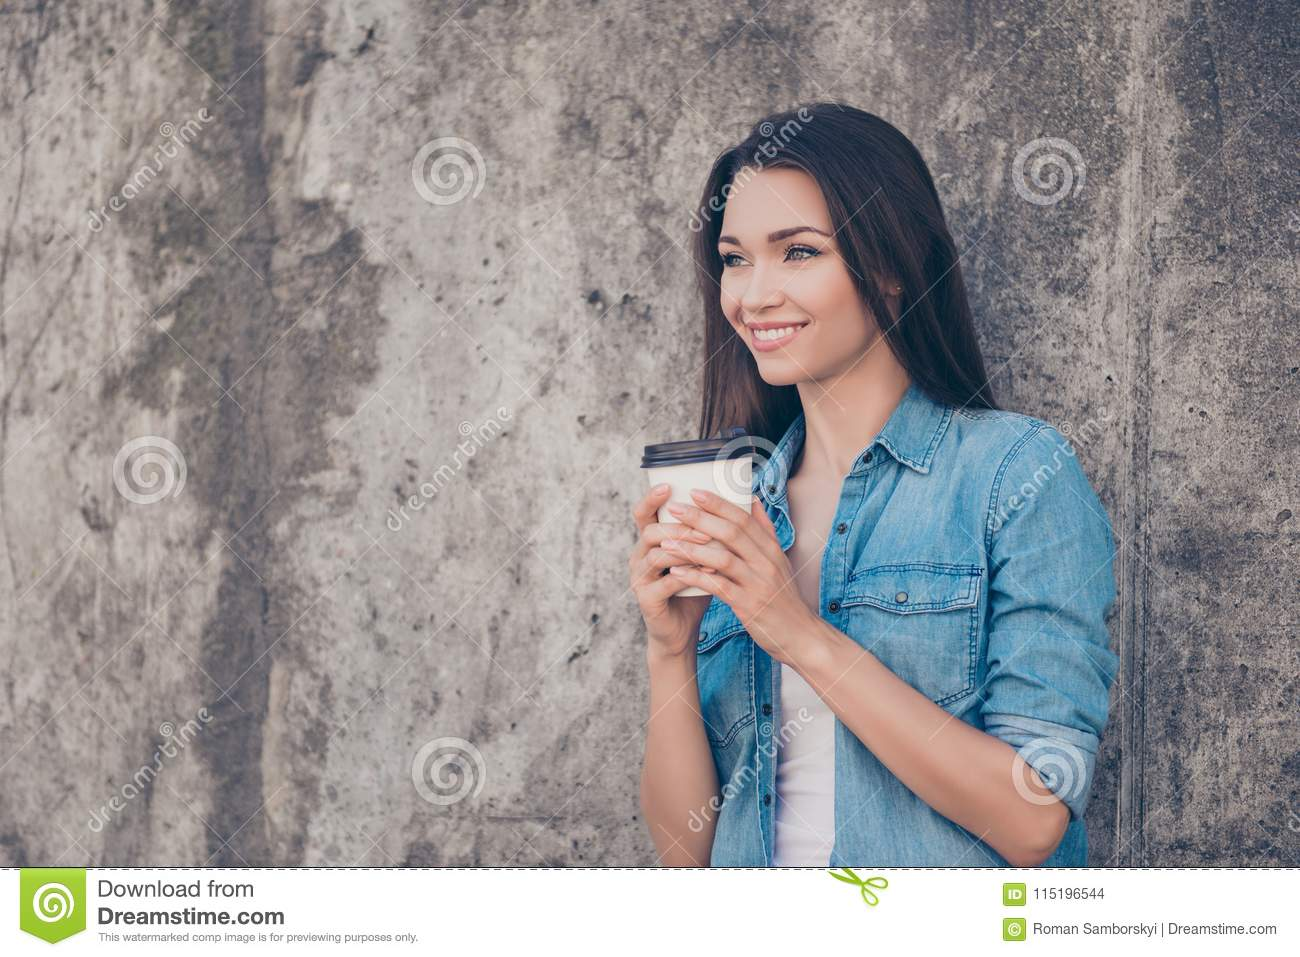 Good morning! Cheerful pretty young serene brunette lady is having hot tea near concrete wall outside, smiling, wearing cozy casua